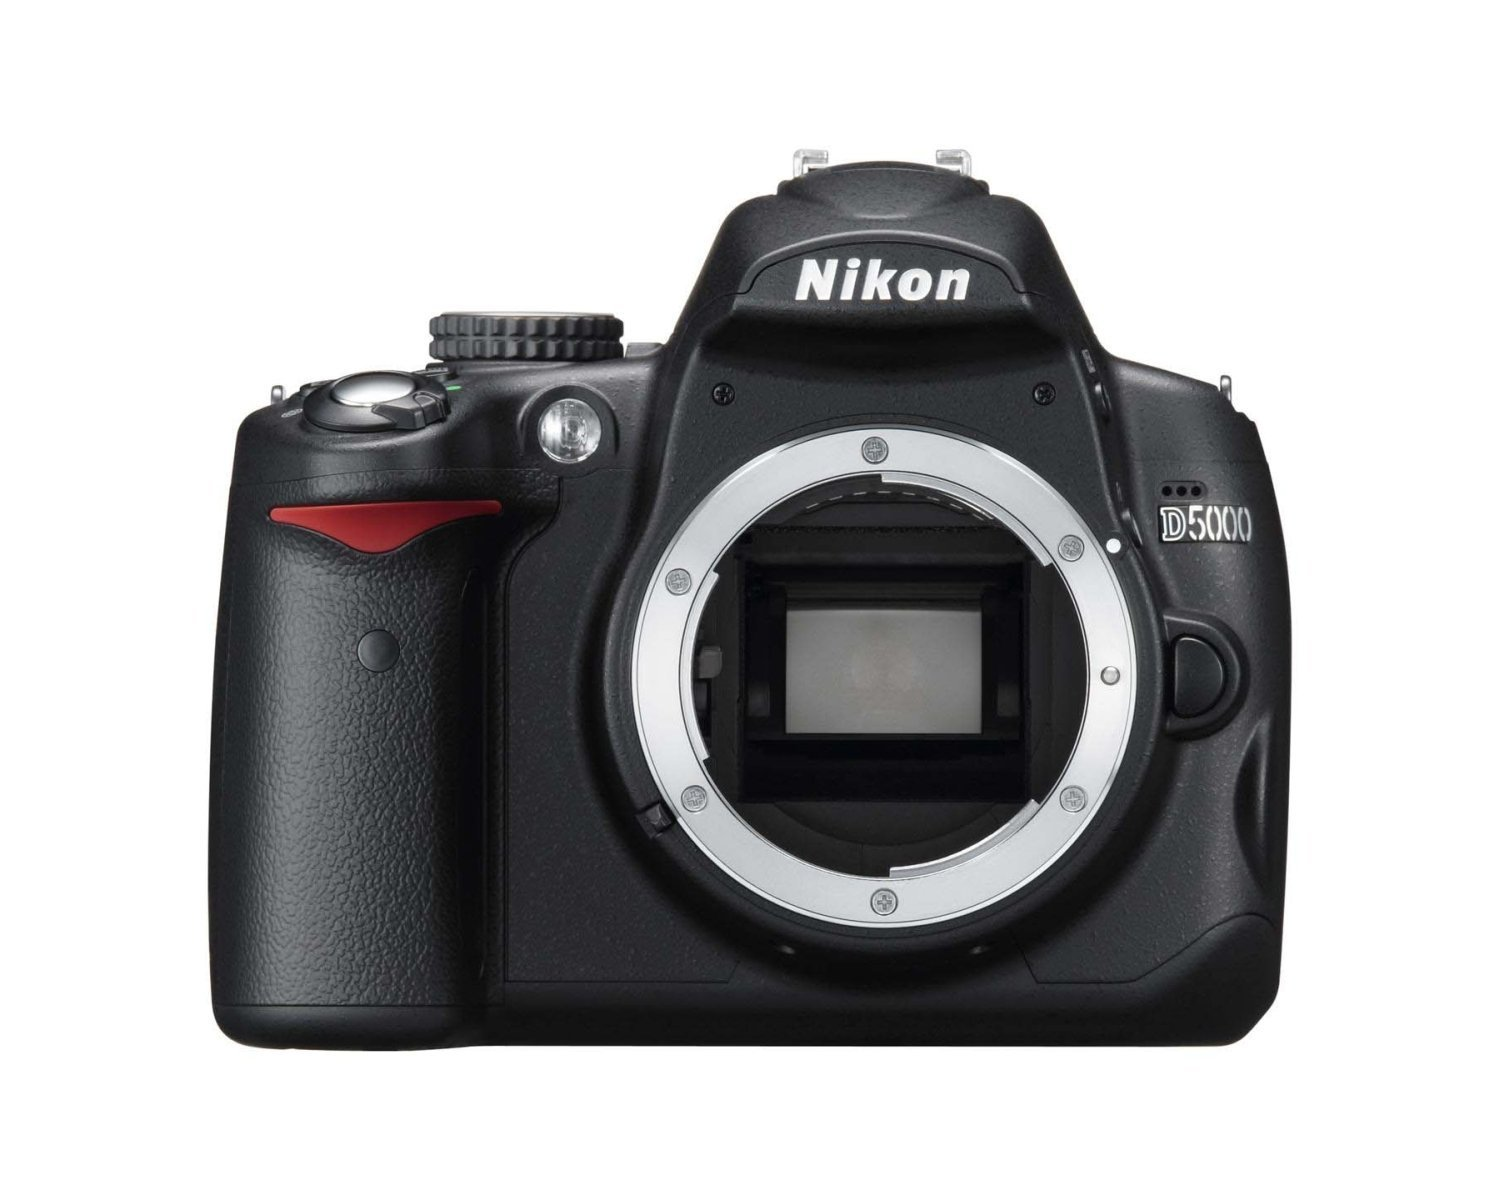 Nikon D5000 - Cámara Réflex Digital 12.3 MP (Cuerpo) (Reacondicionado Certificado)